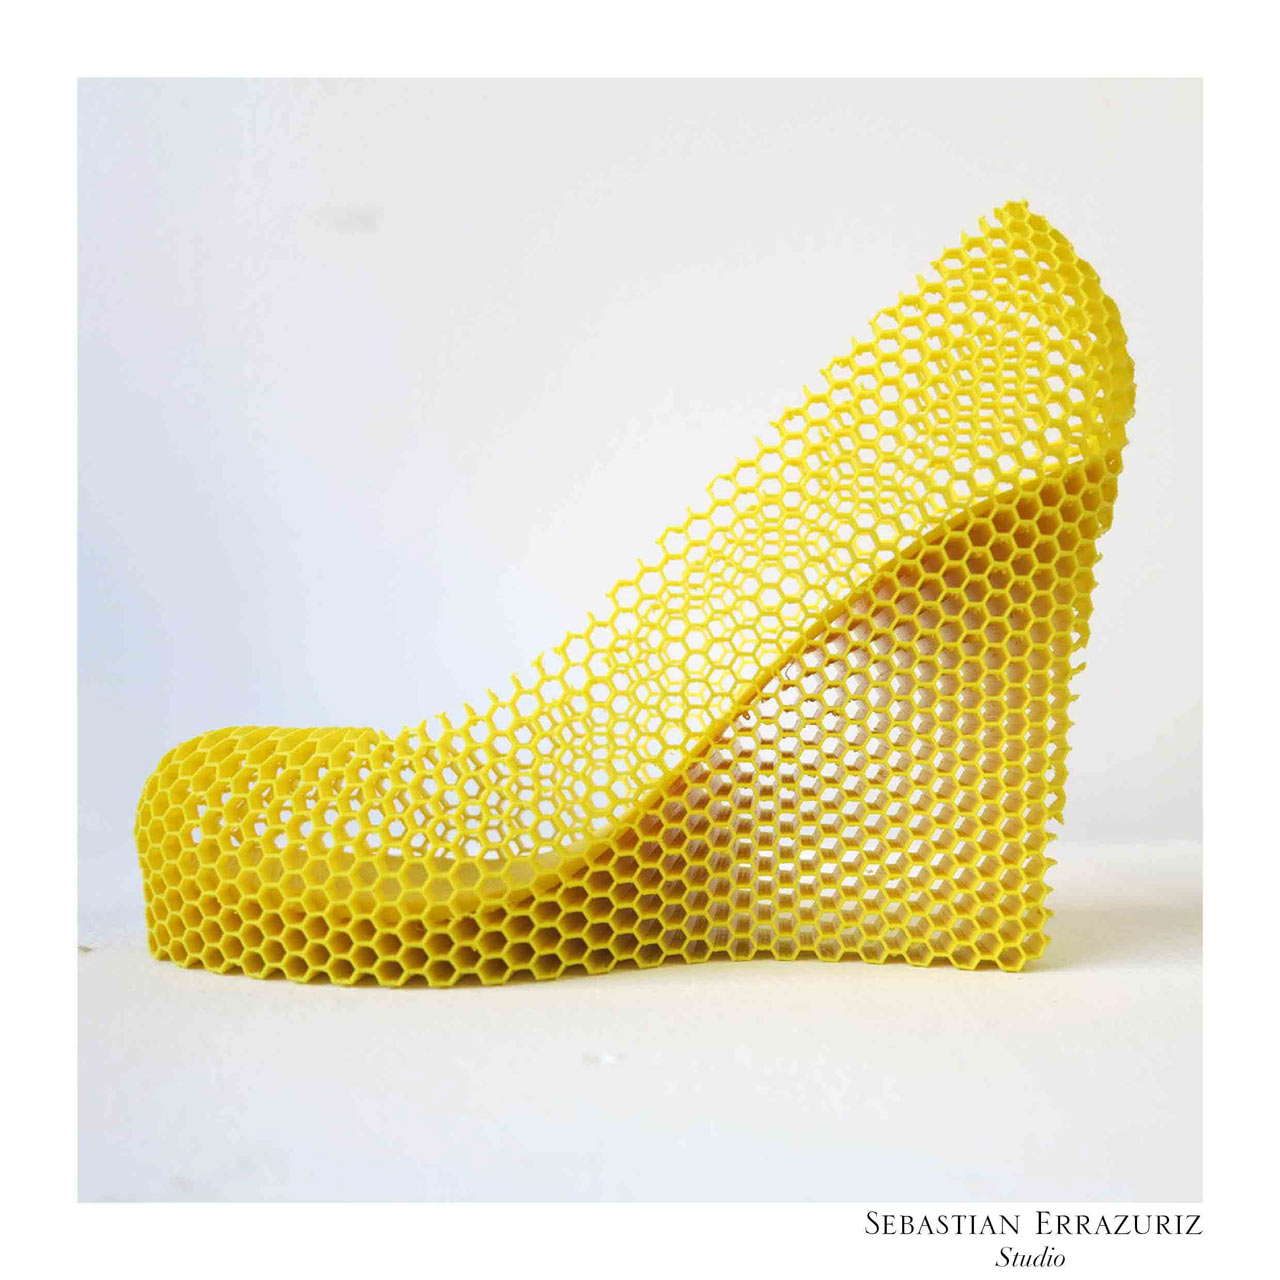 12 Shoes for 12 Lovers by Sebastian Errazuriz: Part 1